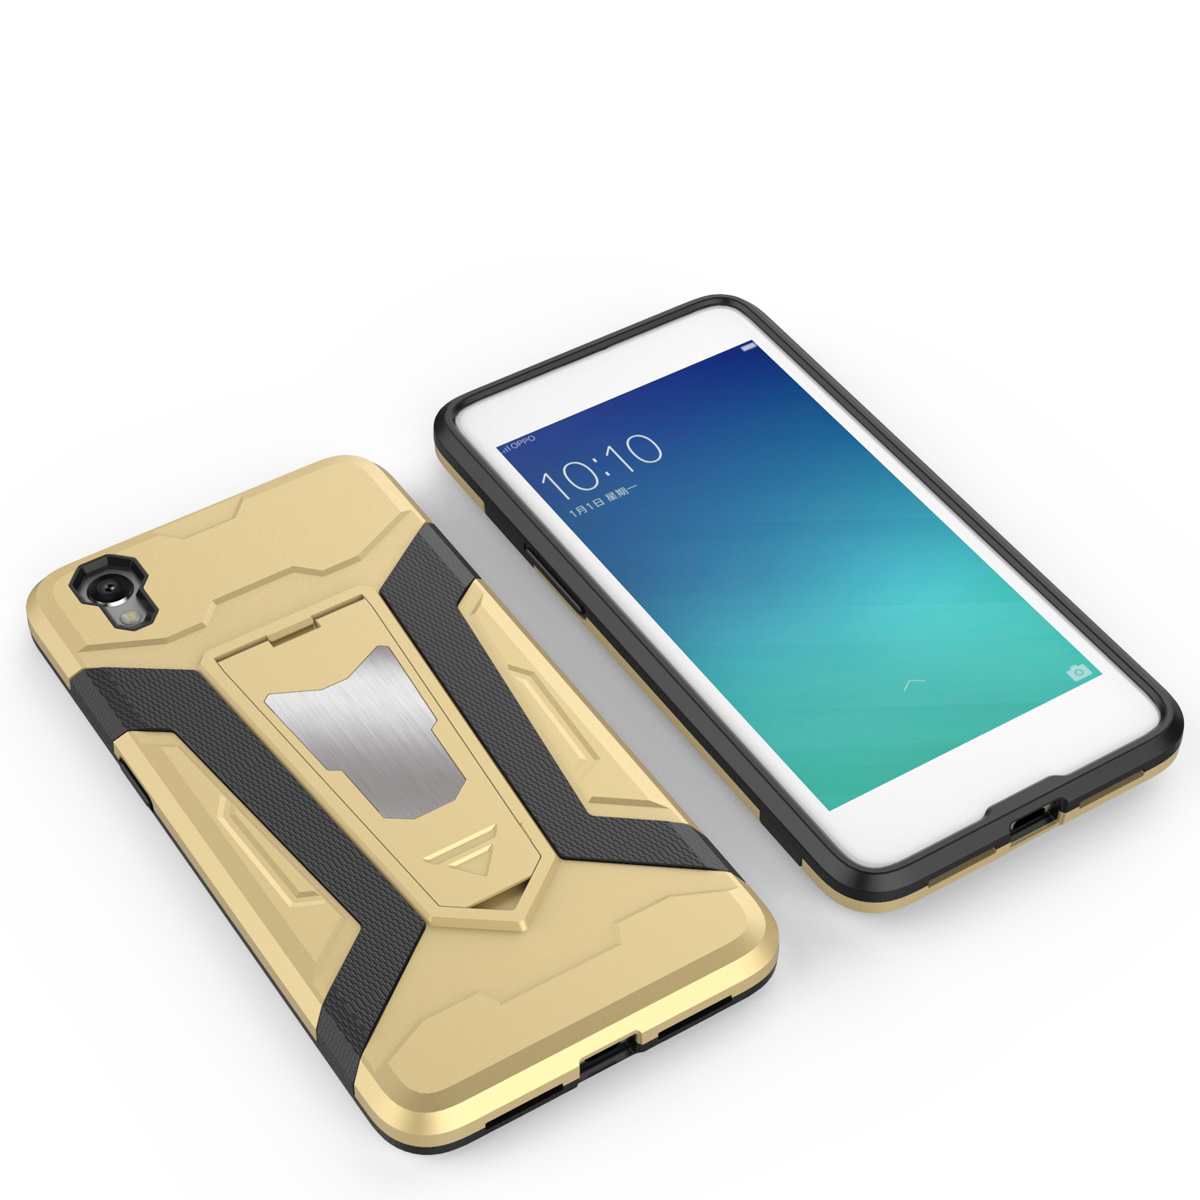 OPPOA37 A37 Stand Armor Back Case Cover Casing